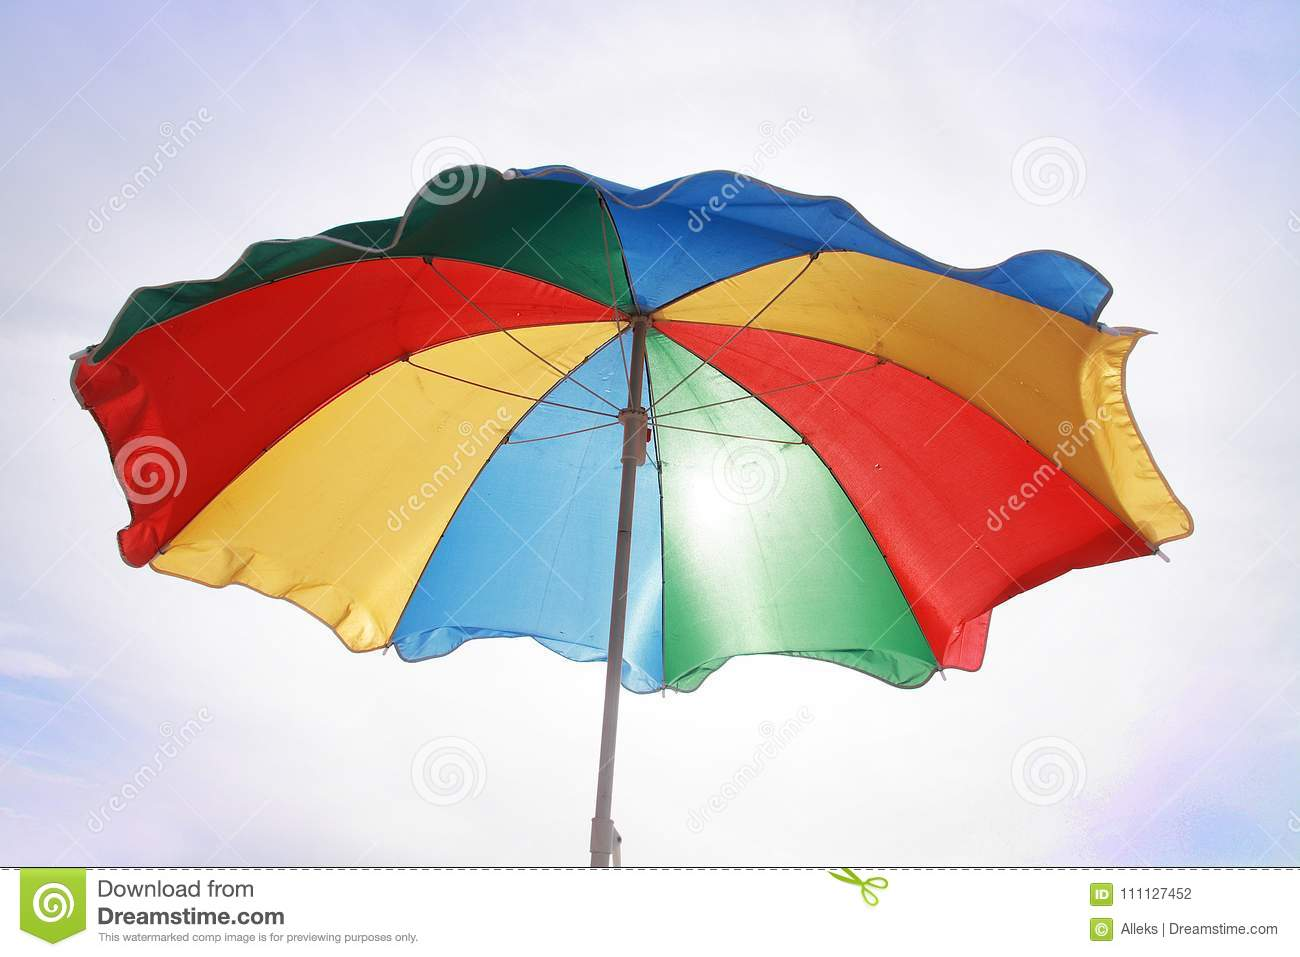 9921a0005 Multi-colored beach umbrella against the background of a light sky. For  summer season.